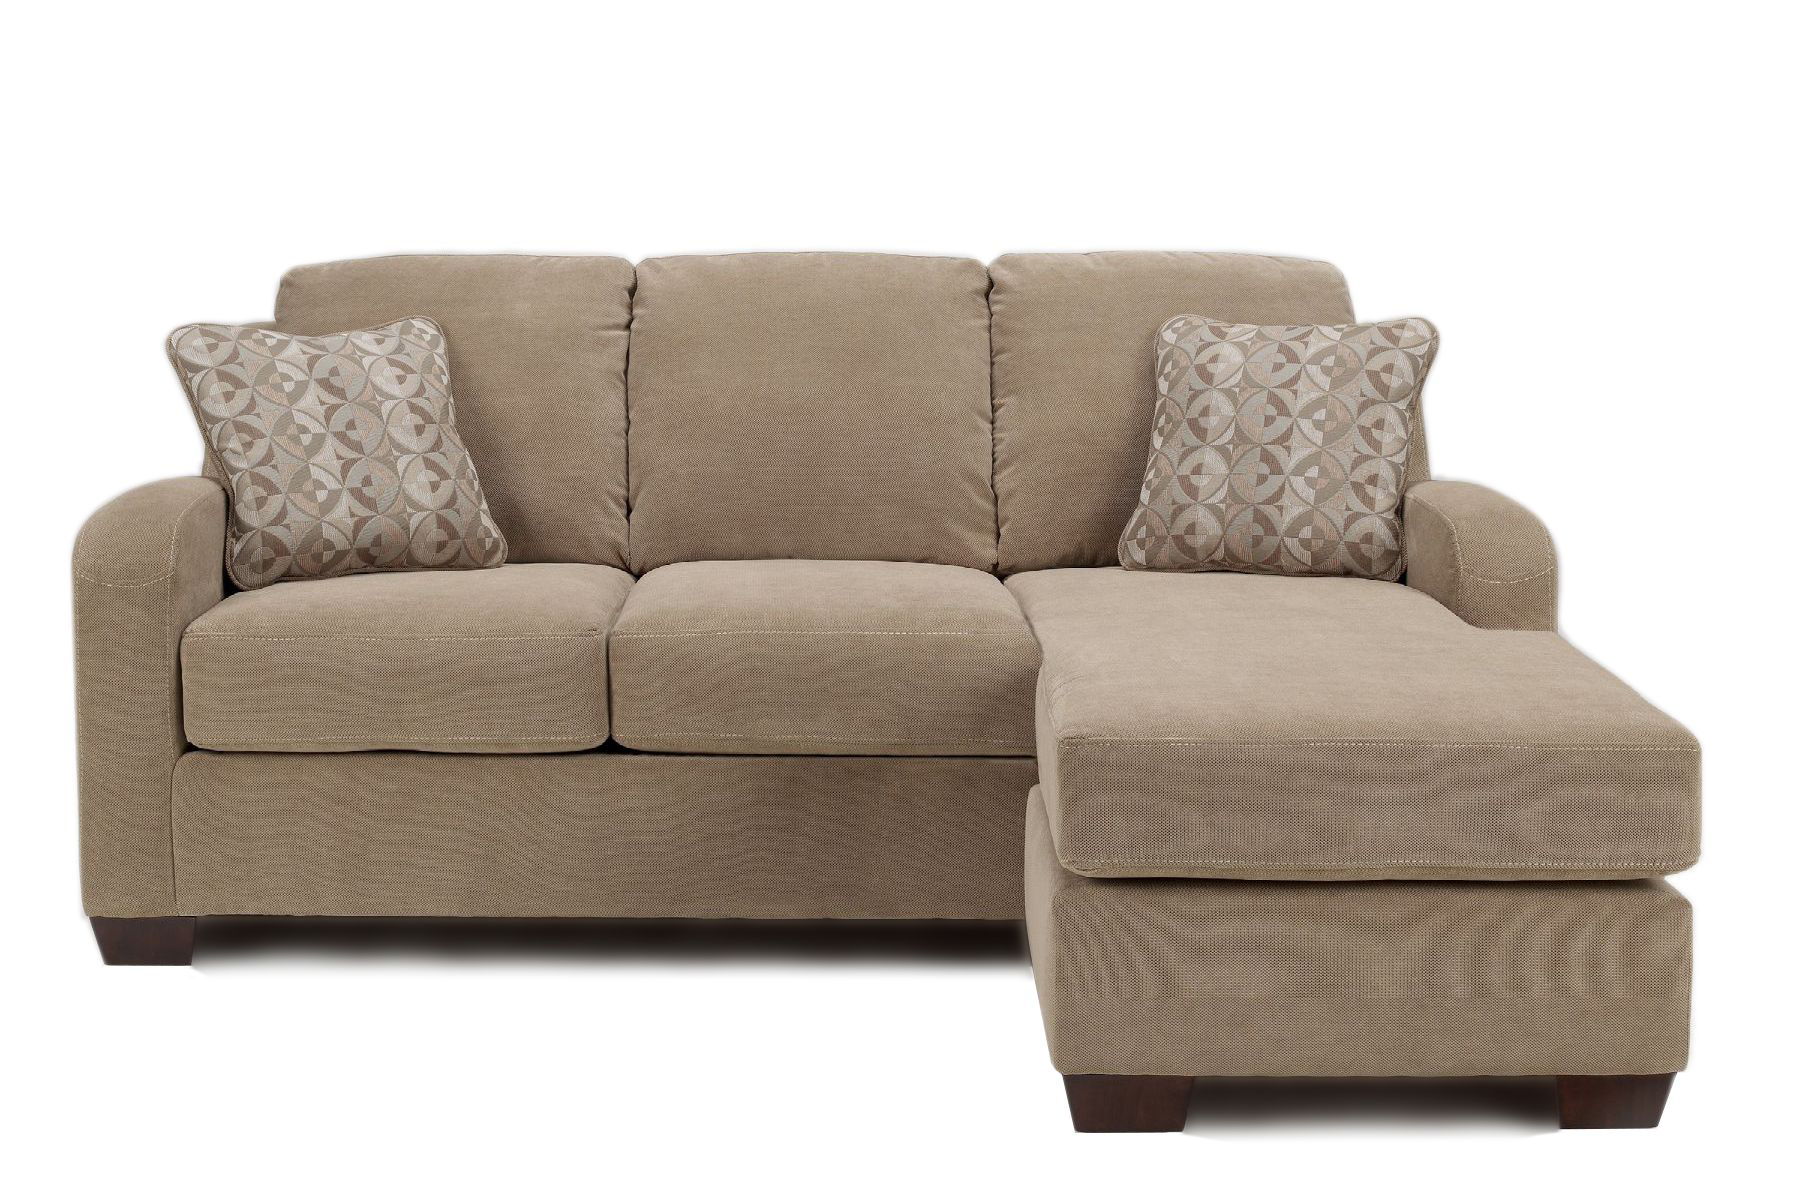 Bowen Sectional Sleeper Sofa With Left Side Chaise Lounger